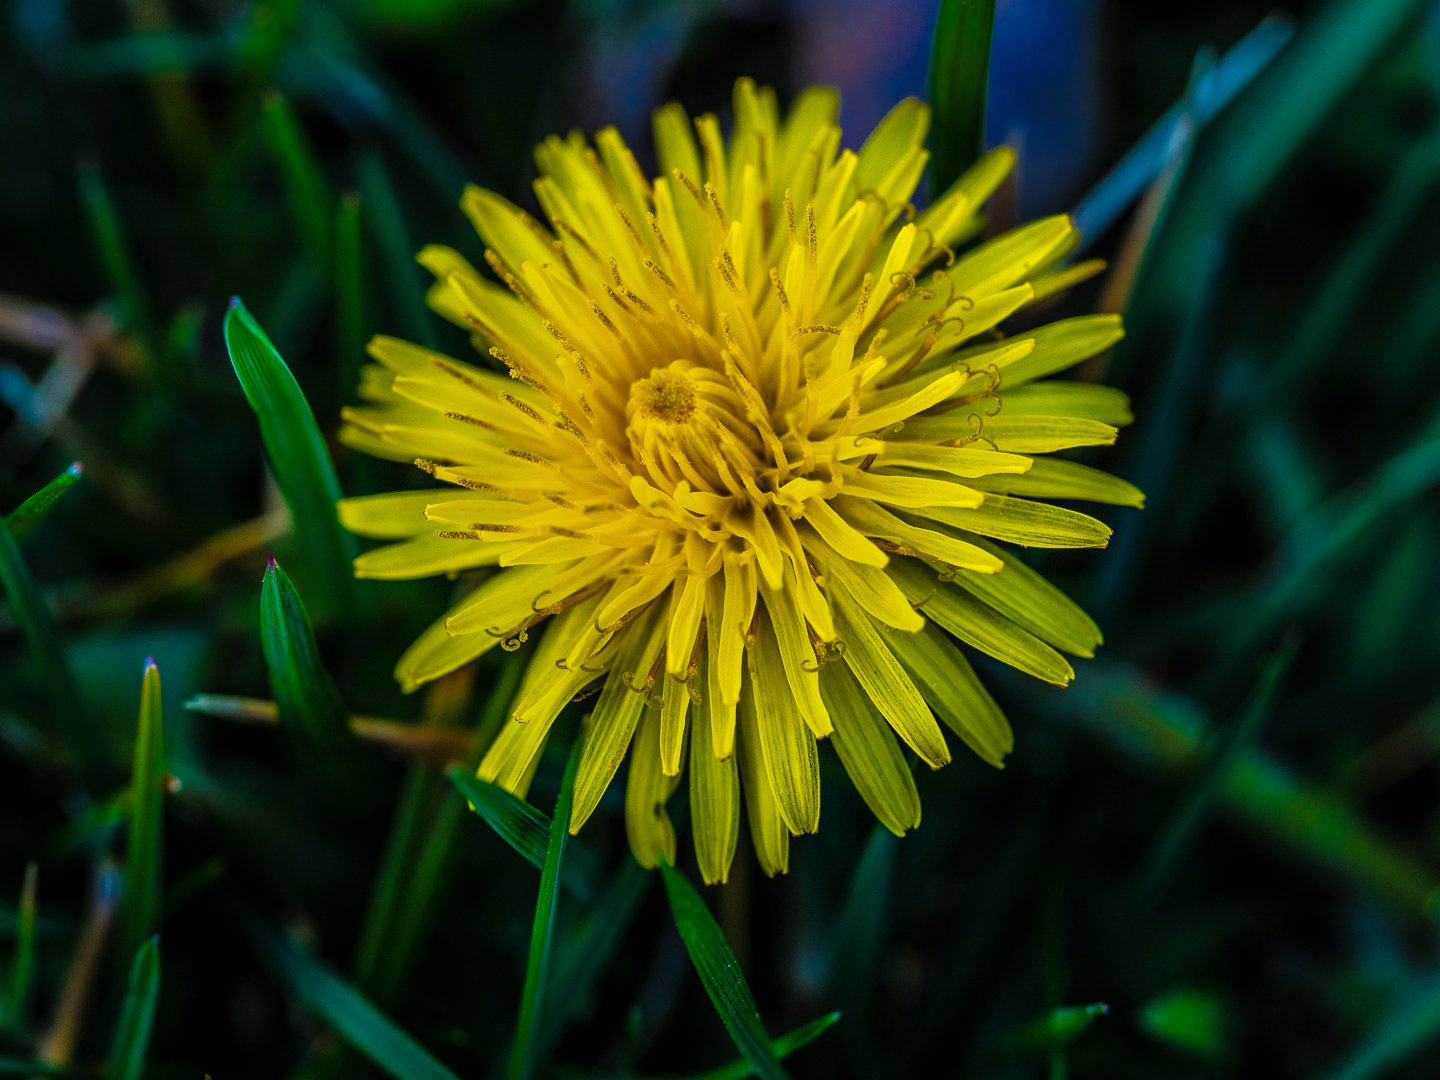 dandelion flower photo